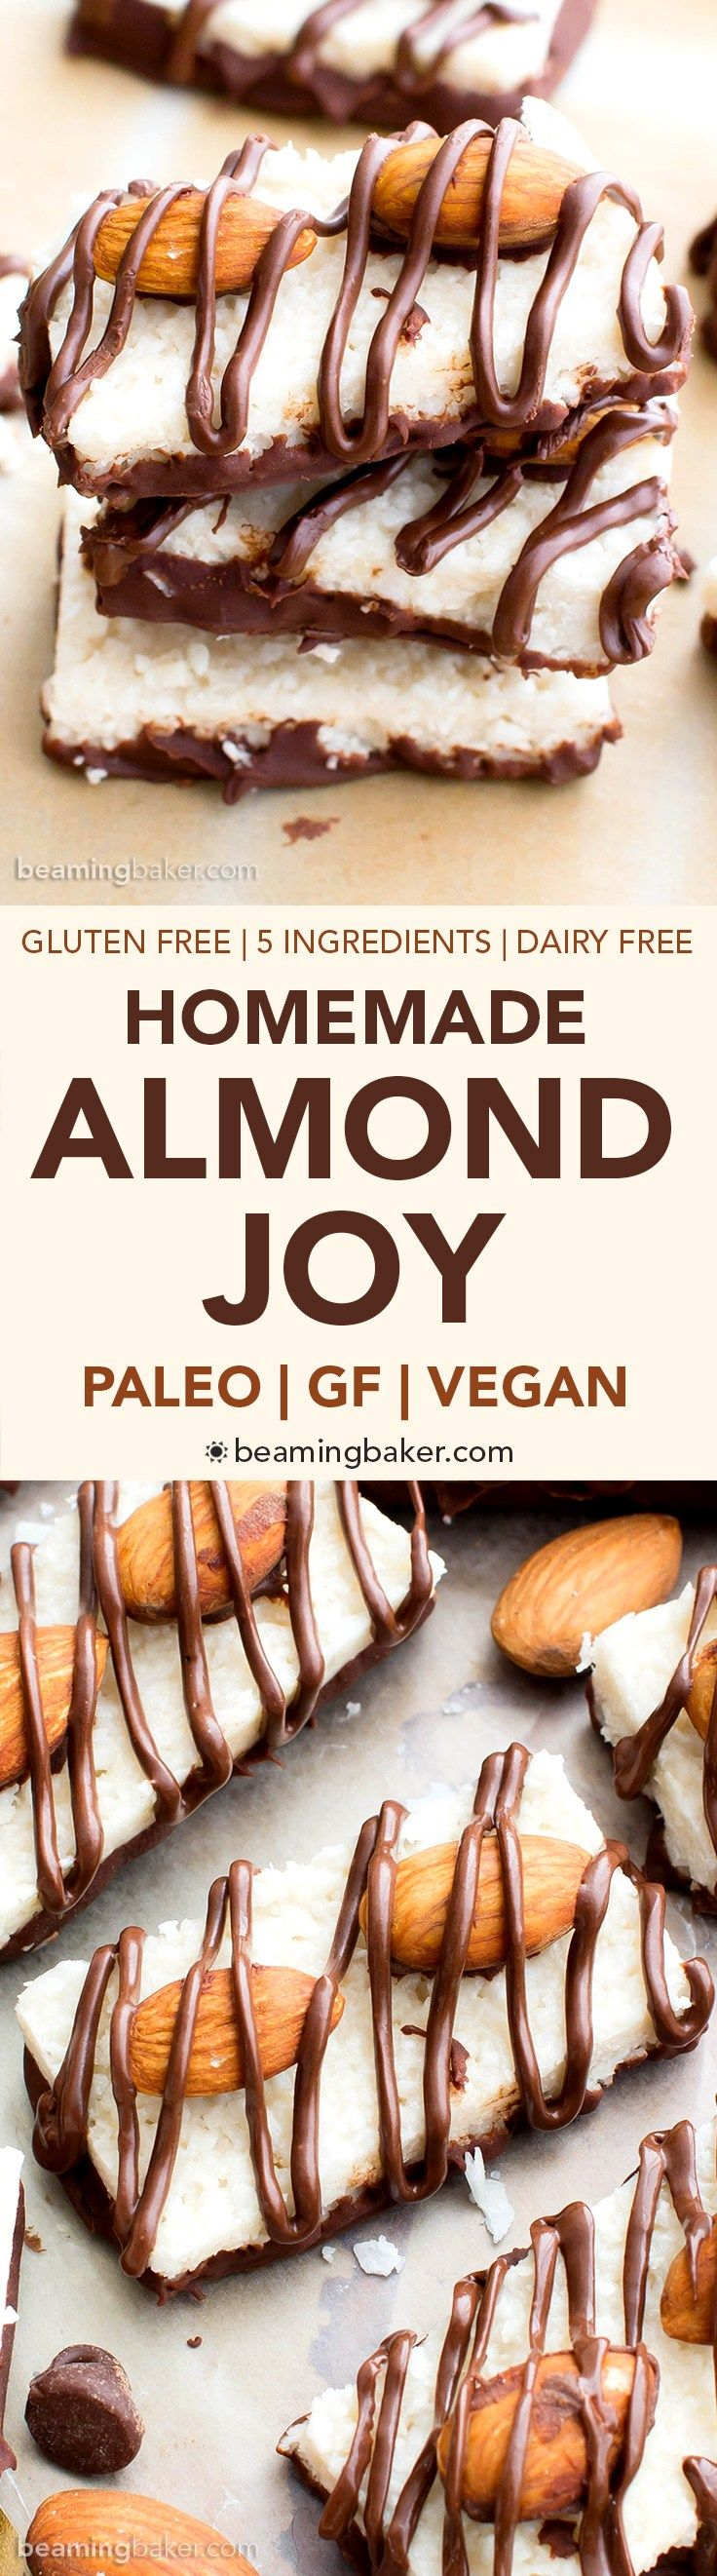 Paleo Almond Joy (V, GF, DF): a 5-ingredient recipe for delicious homemade Almond Joy candy bars bursting with coconut and chocolate. Vegan, Gluten Free.